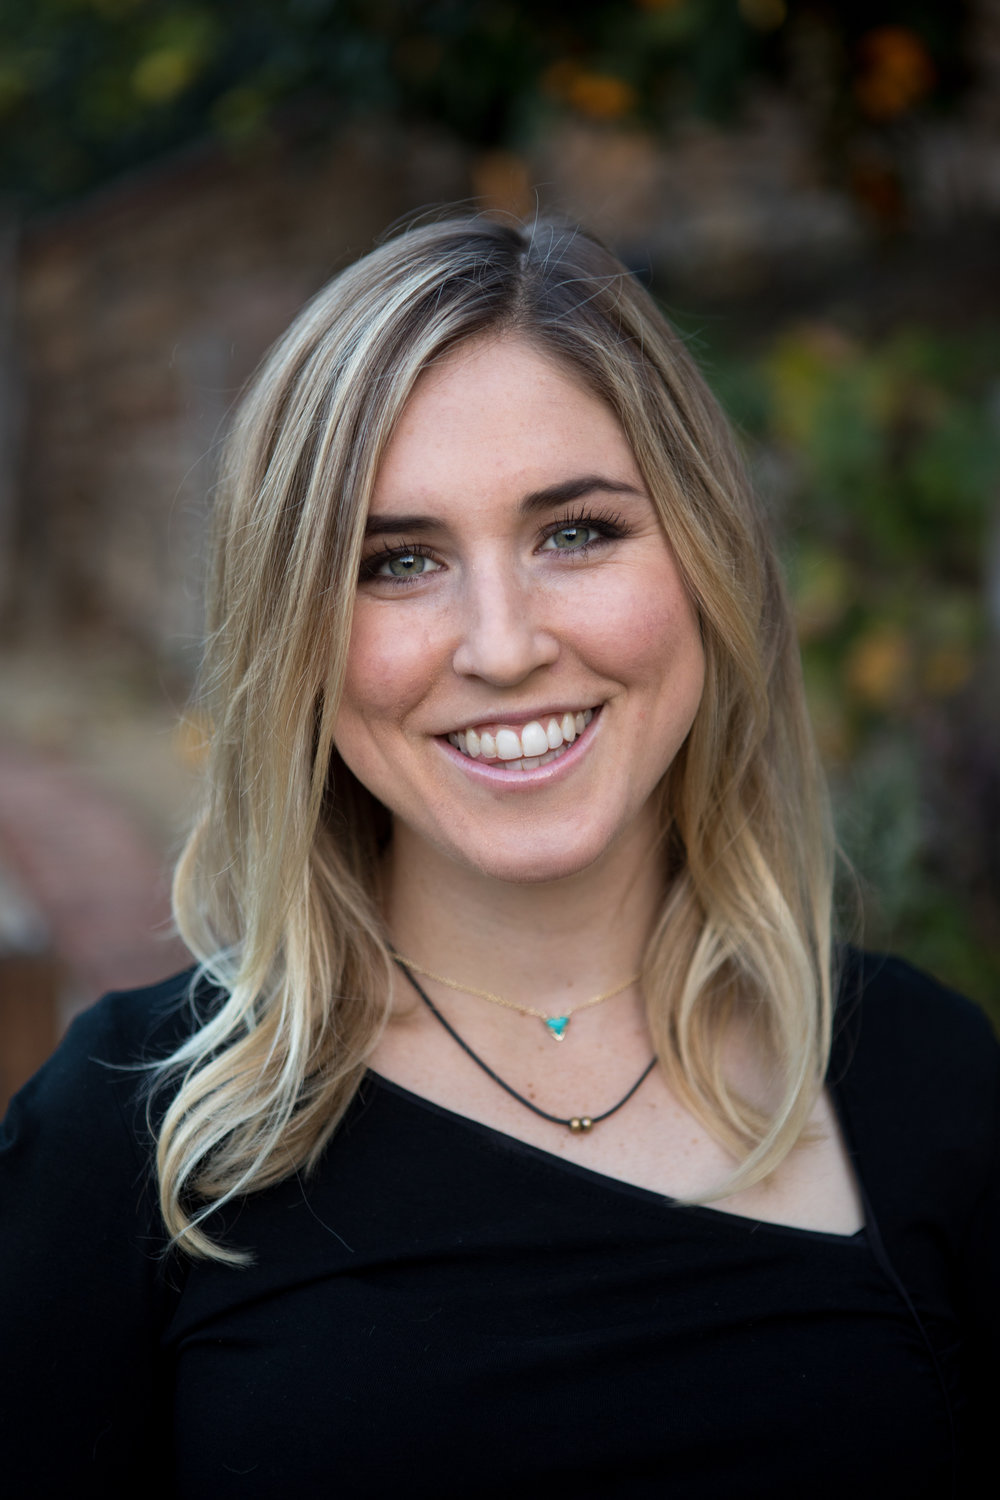 Hailey Hite - I have a passion for helping others grow, ideally through a pursuit of God. I grew up in Orange County, CA. Now I live in LA as a junior on the USC Women's Soccer Team. I've been playing soccer as well as riding horses since I was 5. I'm also studying accounting and business. Aside from being a student-athlete, I'm involved in other things on campus. I live in Delta Gamma sorority and help lead a Christian ministry for the sorority/fraternity Greek life at USC.